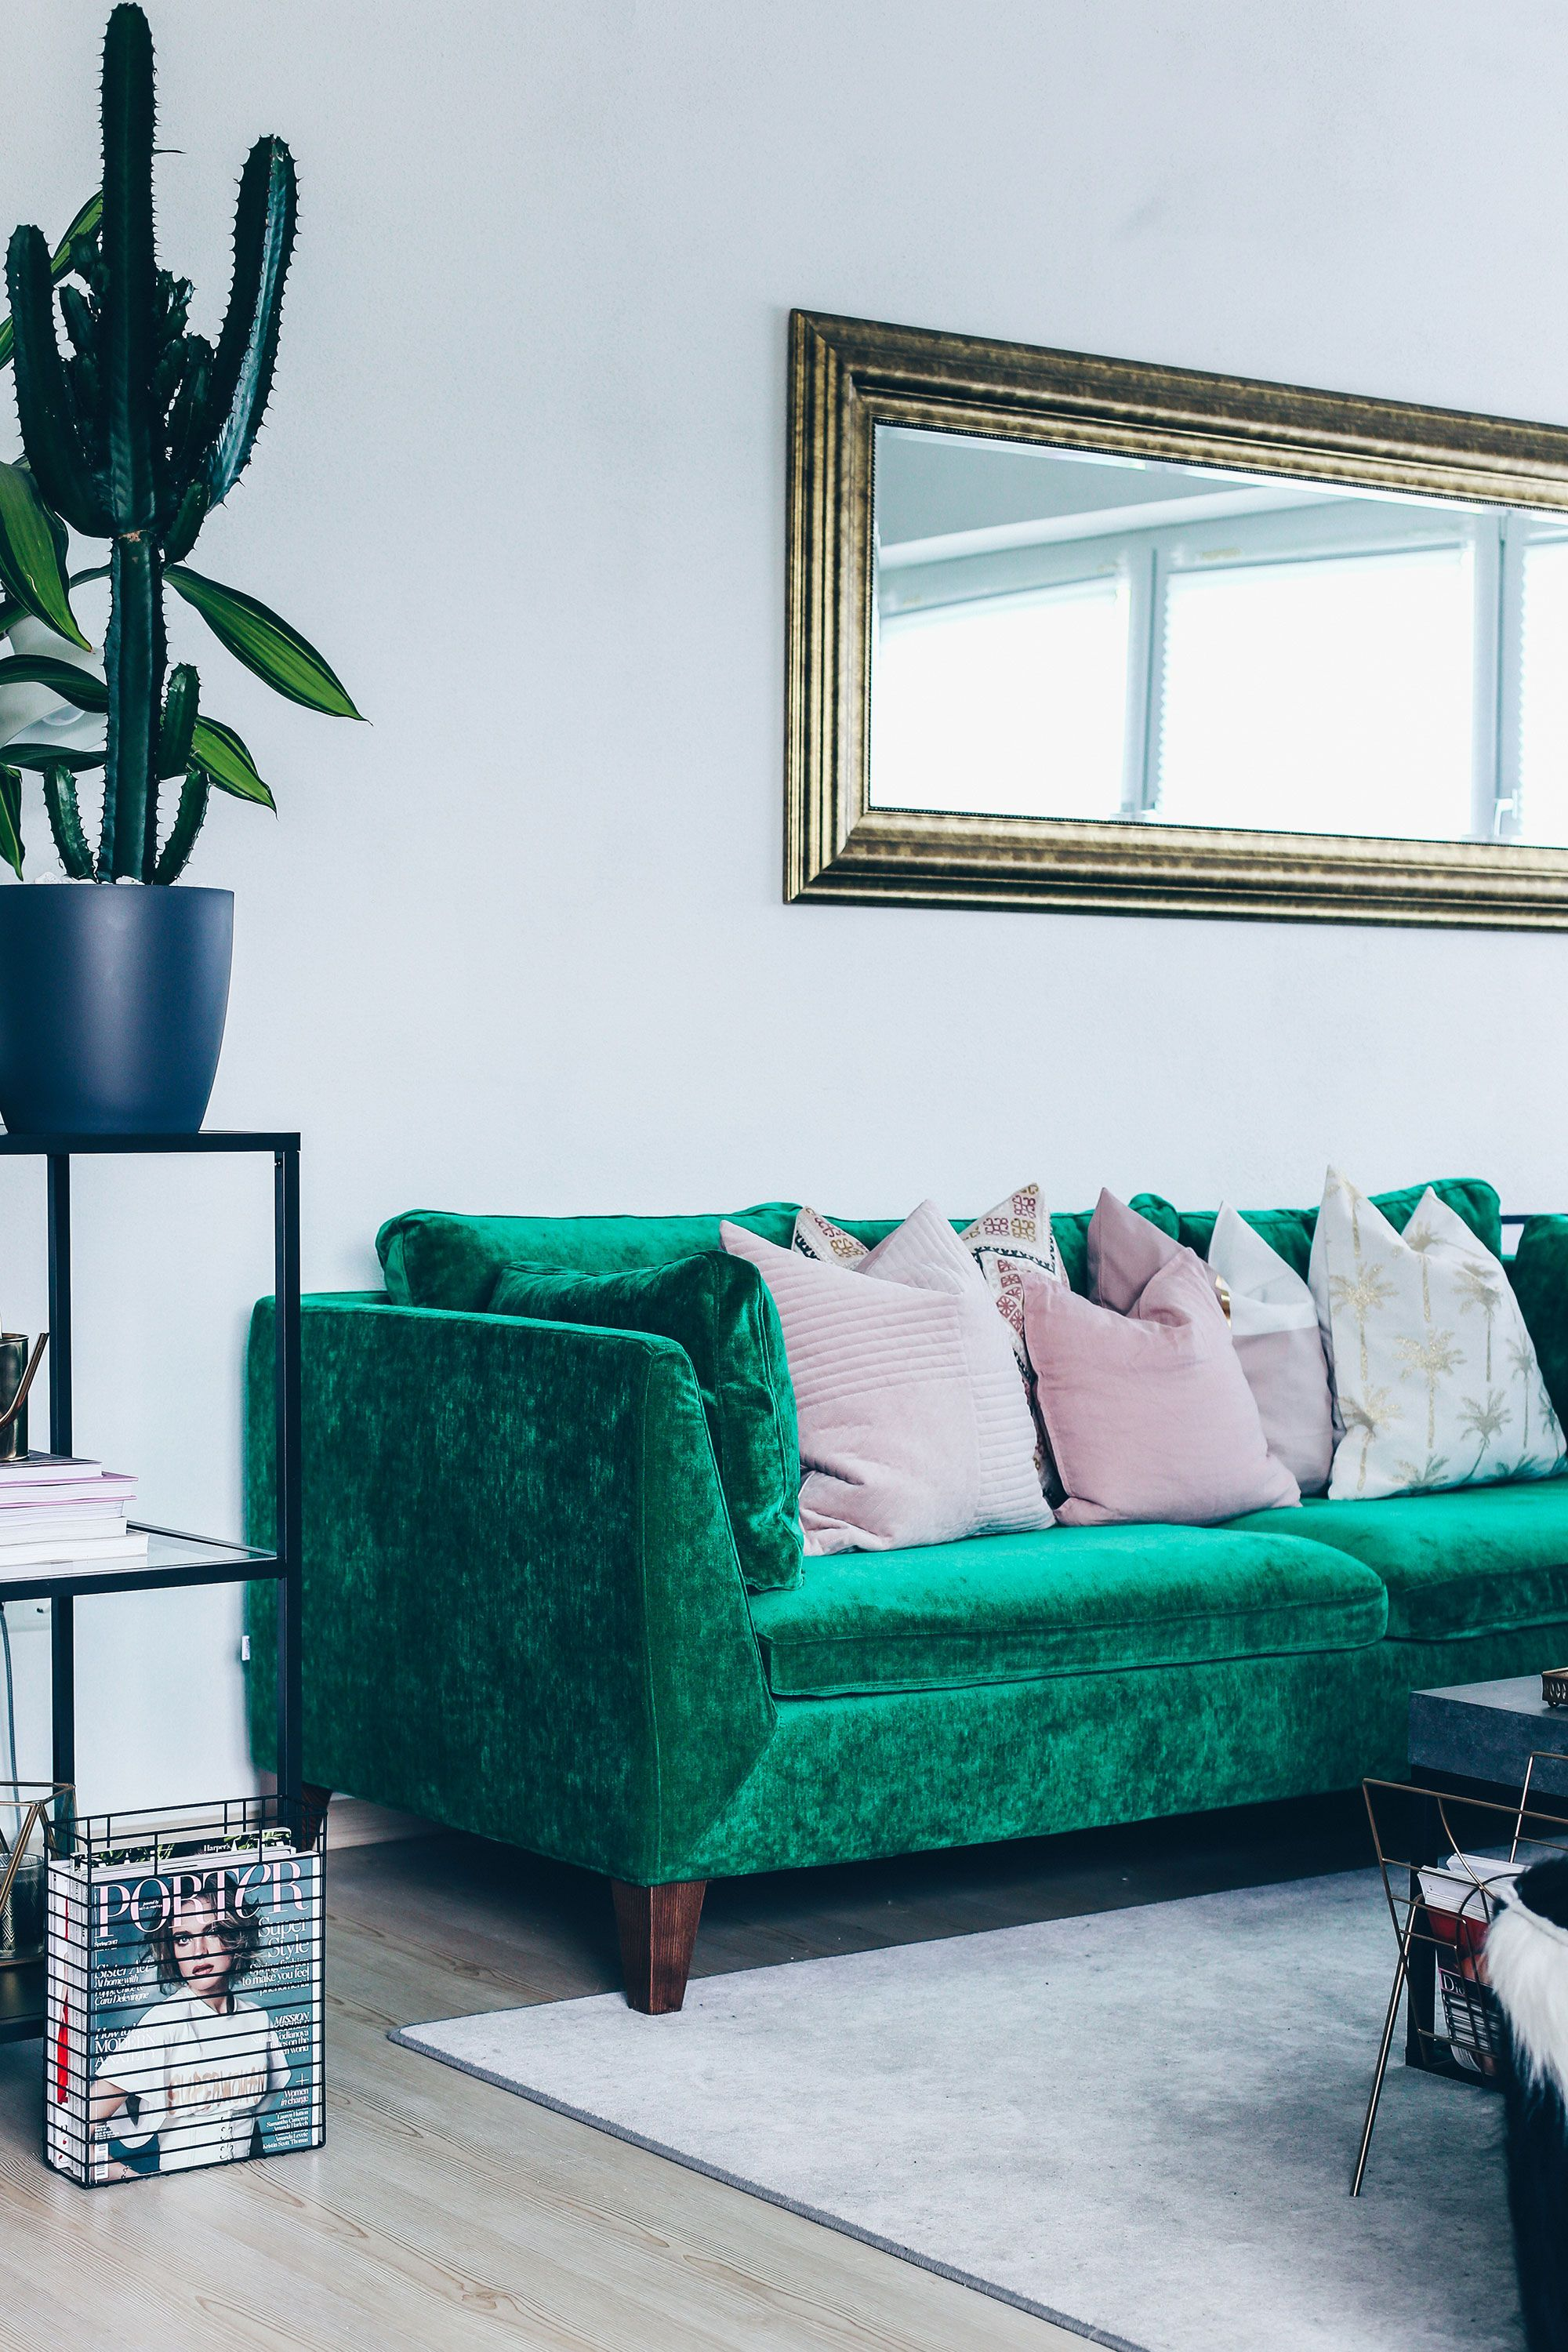 Emerald Green Sofa Covers Bed Removable Stockholm Cover 3 Seater Dream Home Pinterest